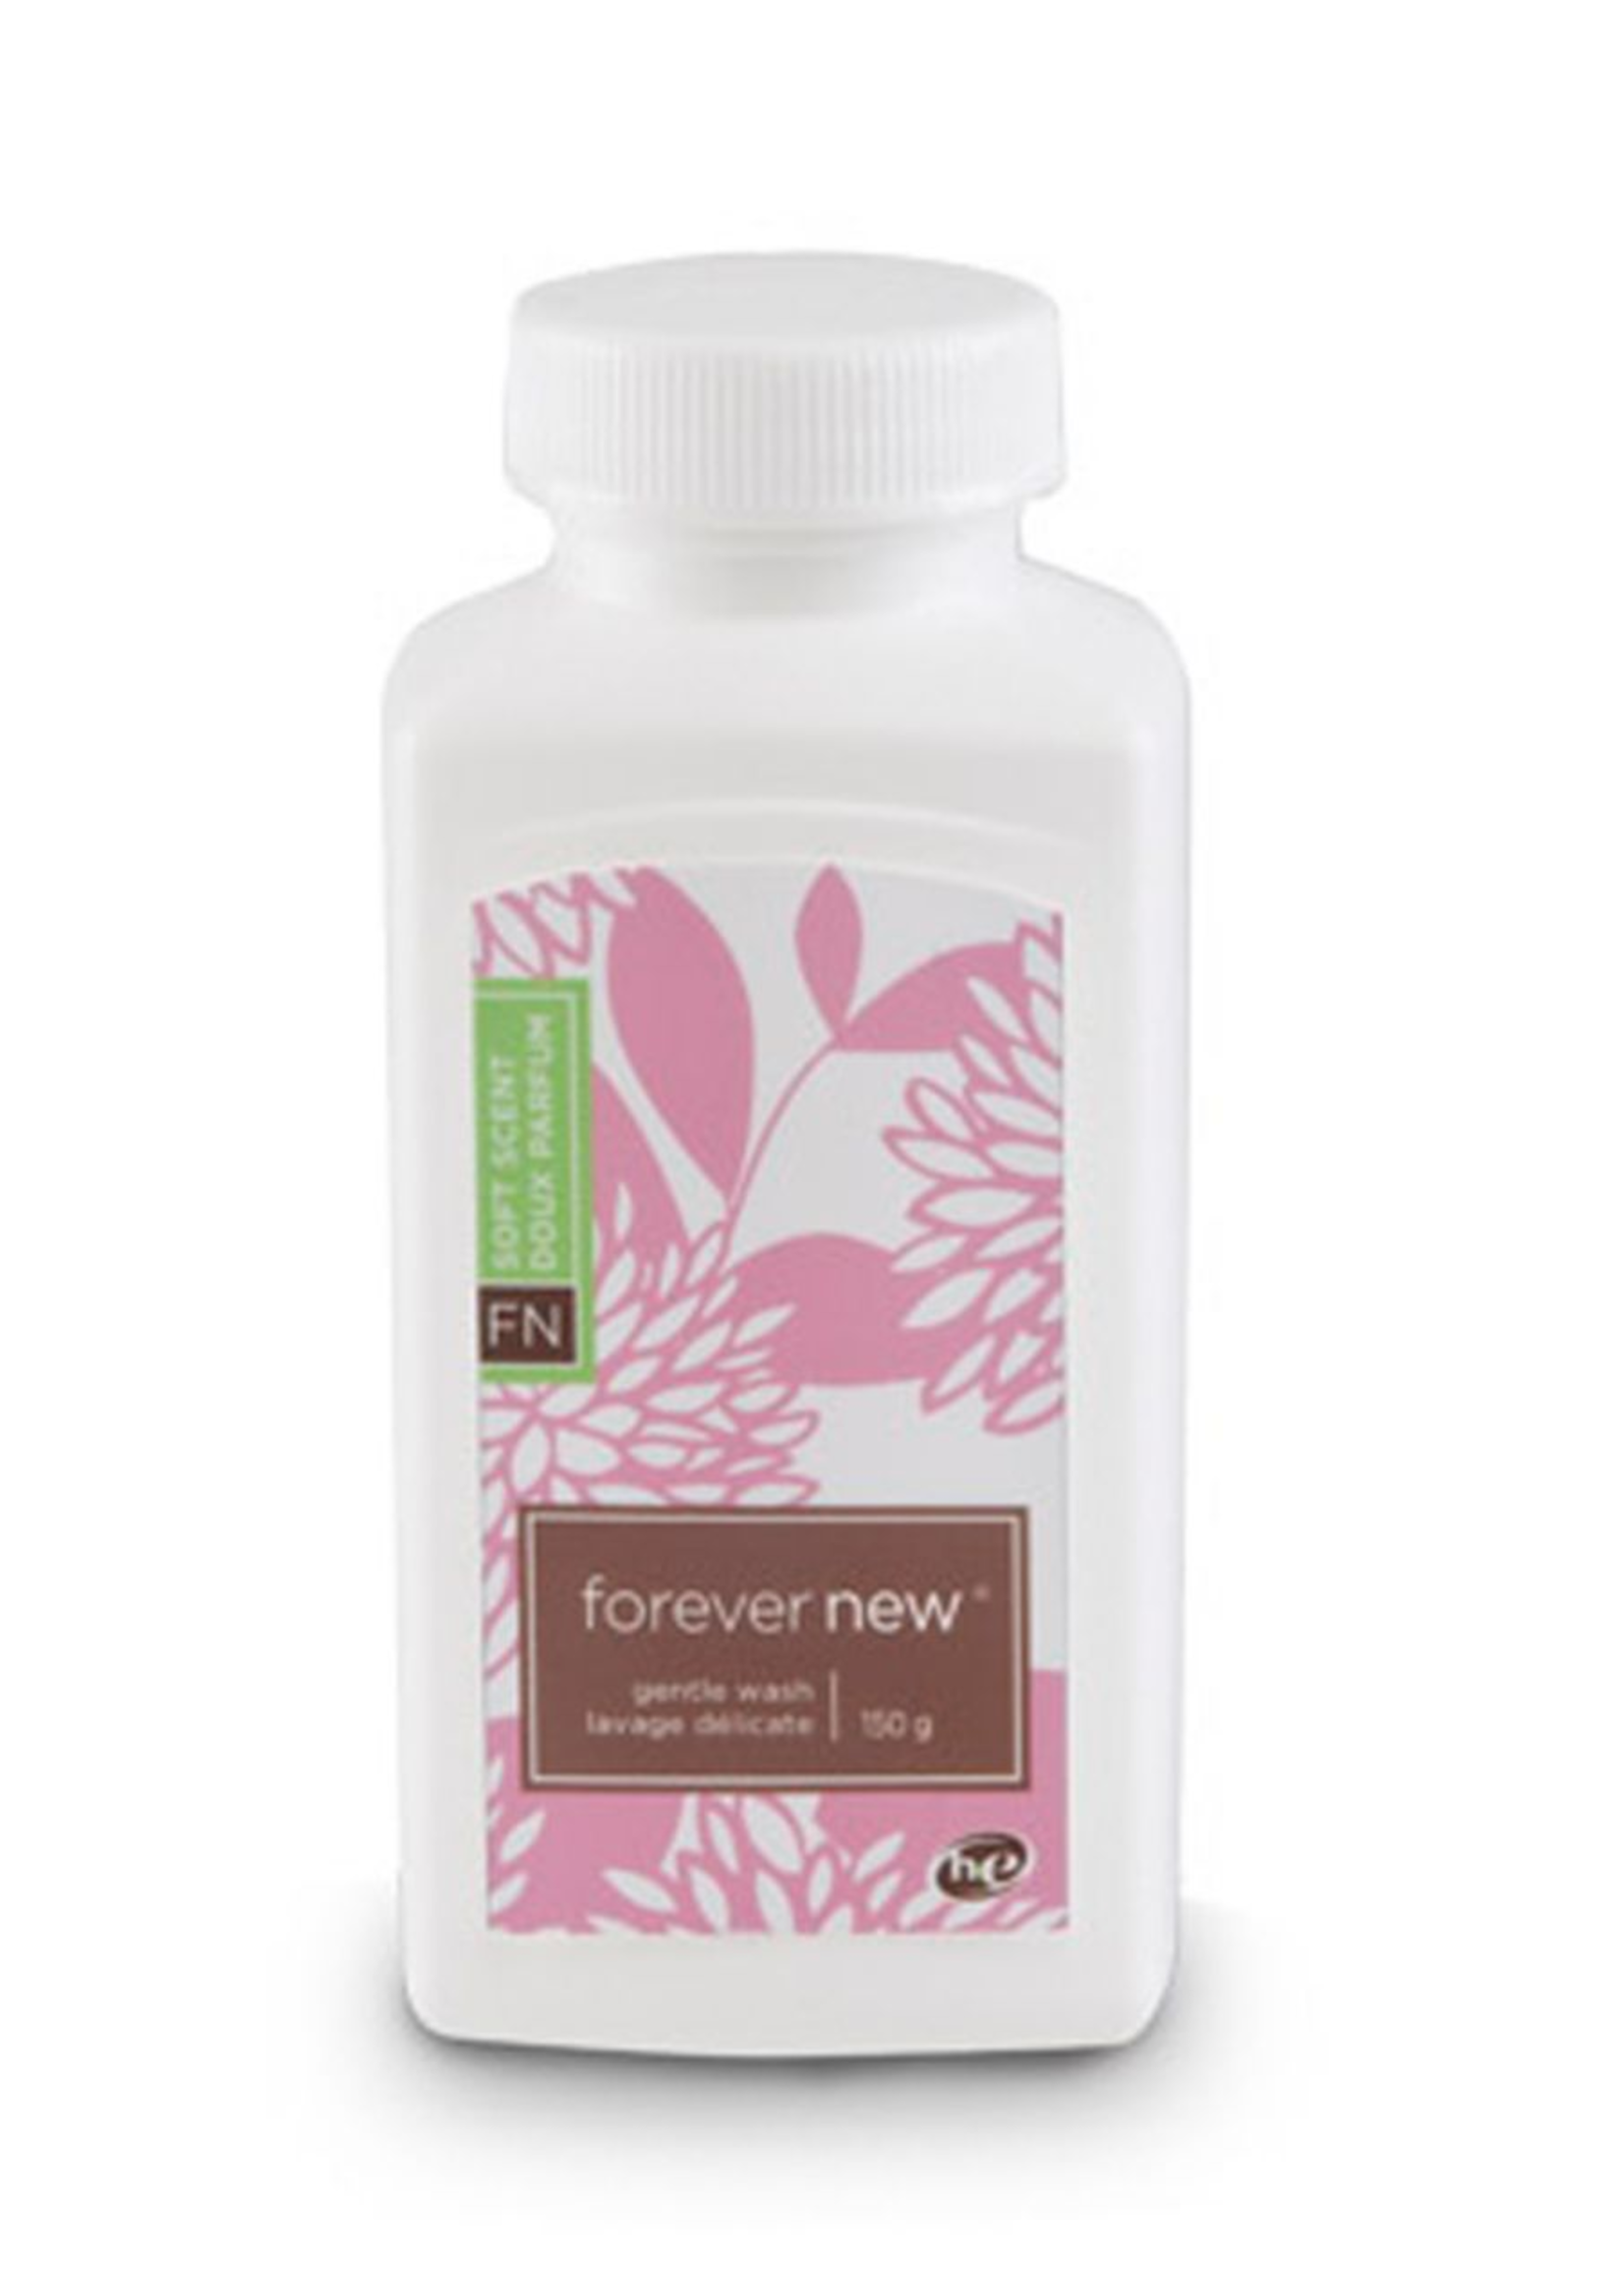 Forever New Powder Detergent Small 150g 02200